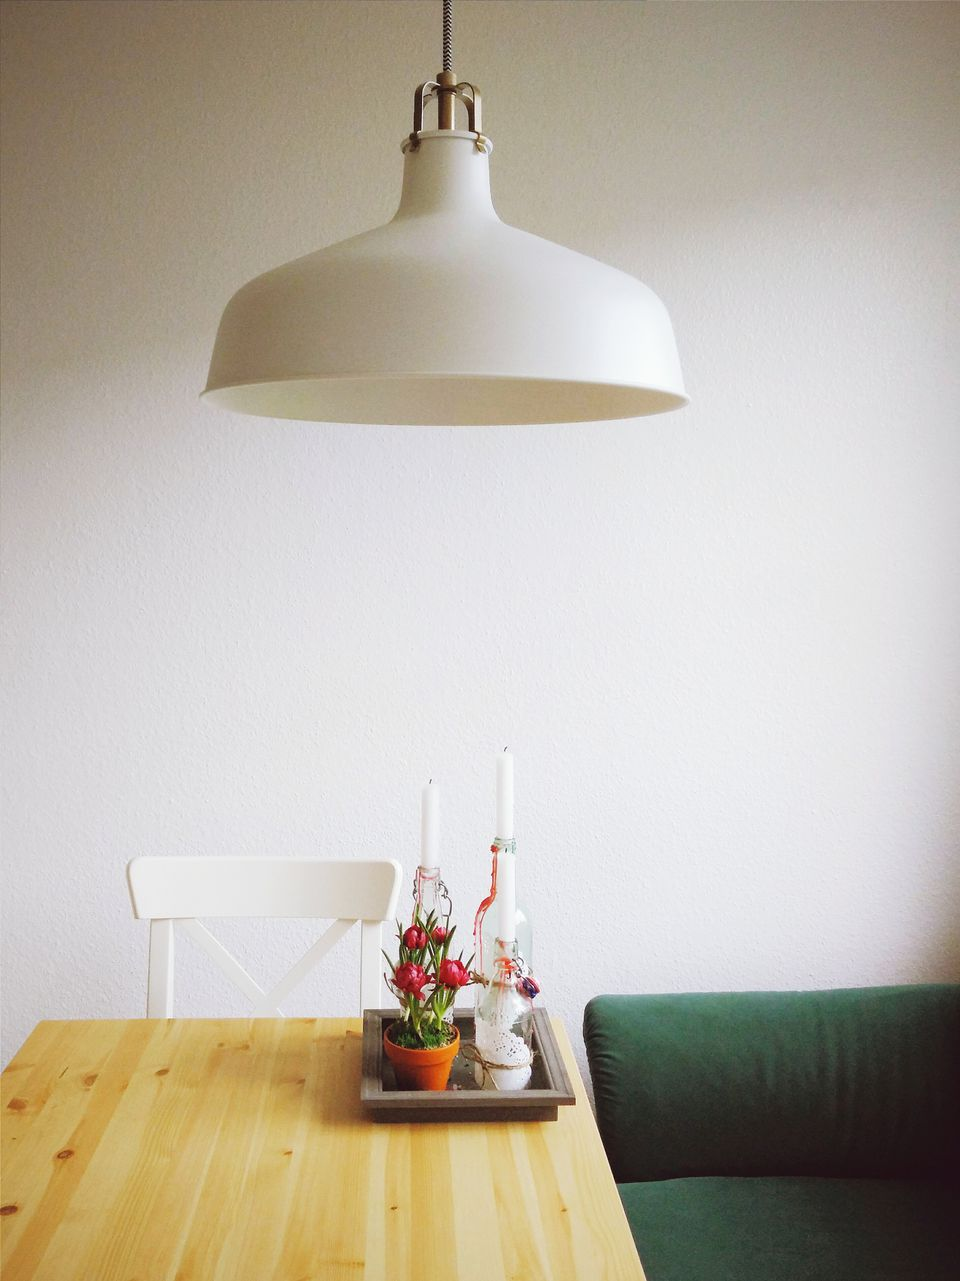 What is a pendant light?